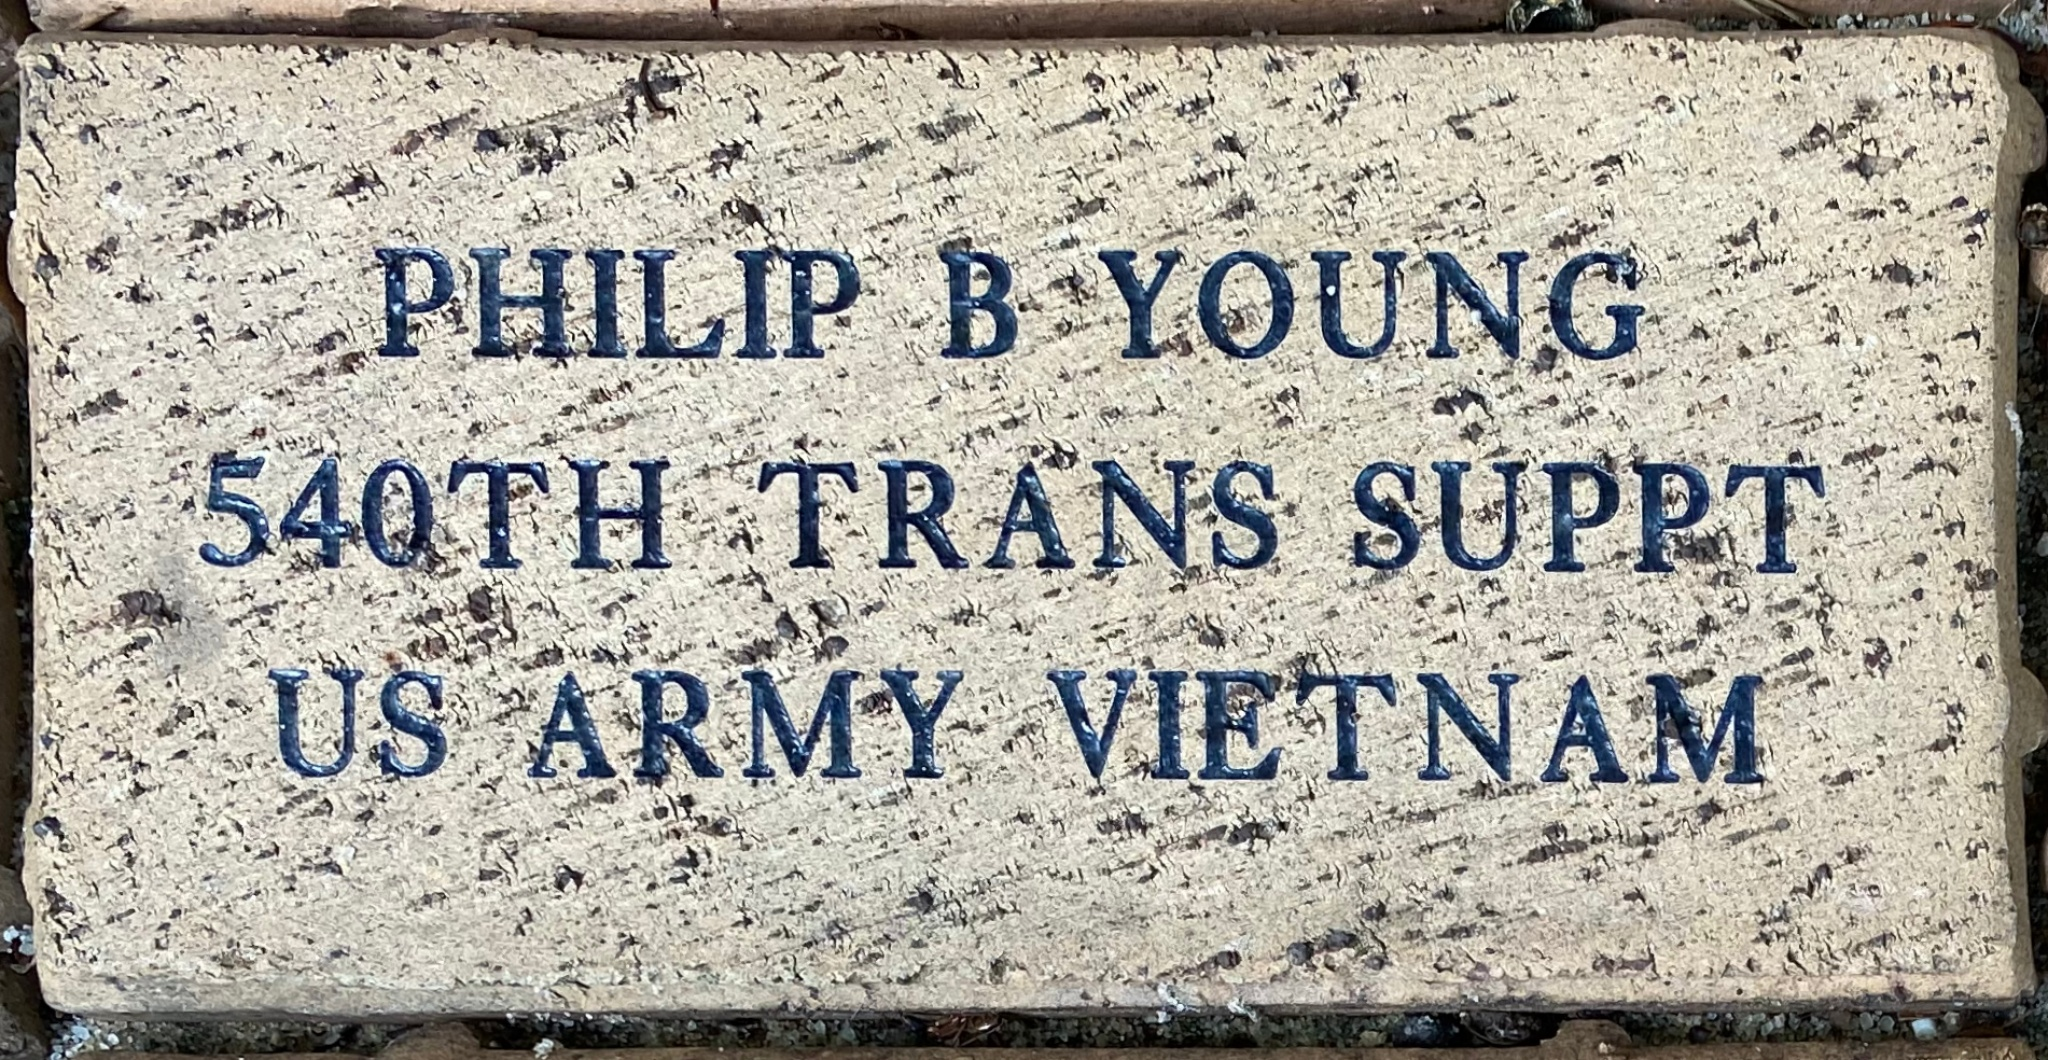 PHILIP B YOUNG 540TH TRANS SUPPT US ARMY VIETNAM